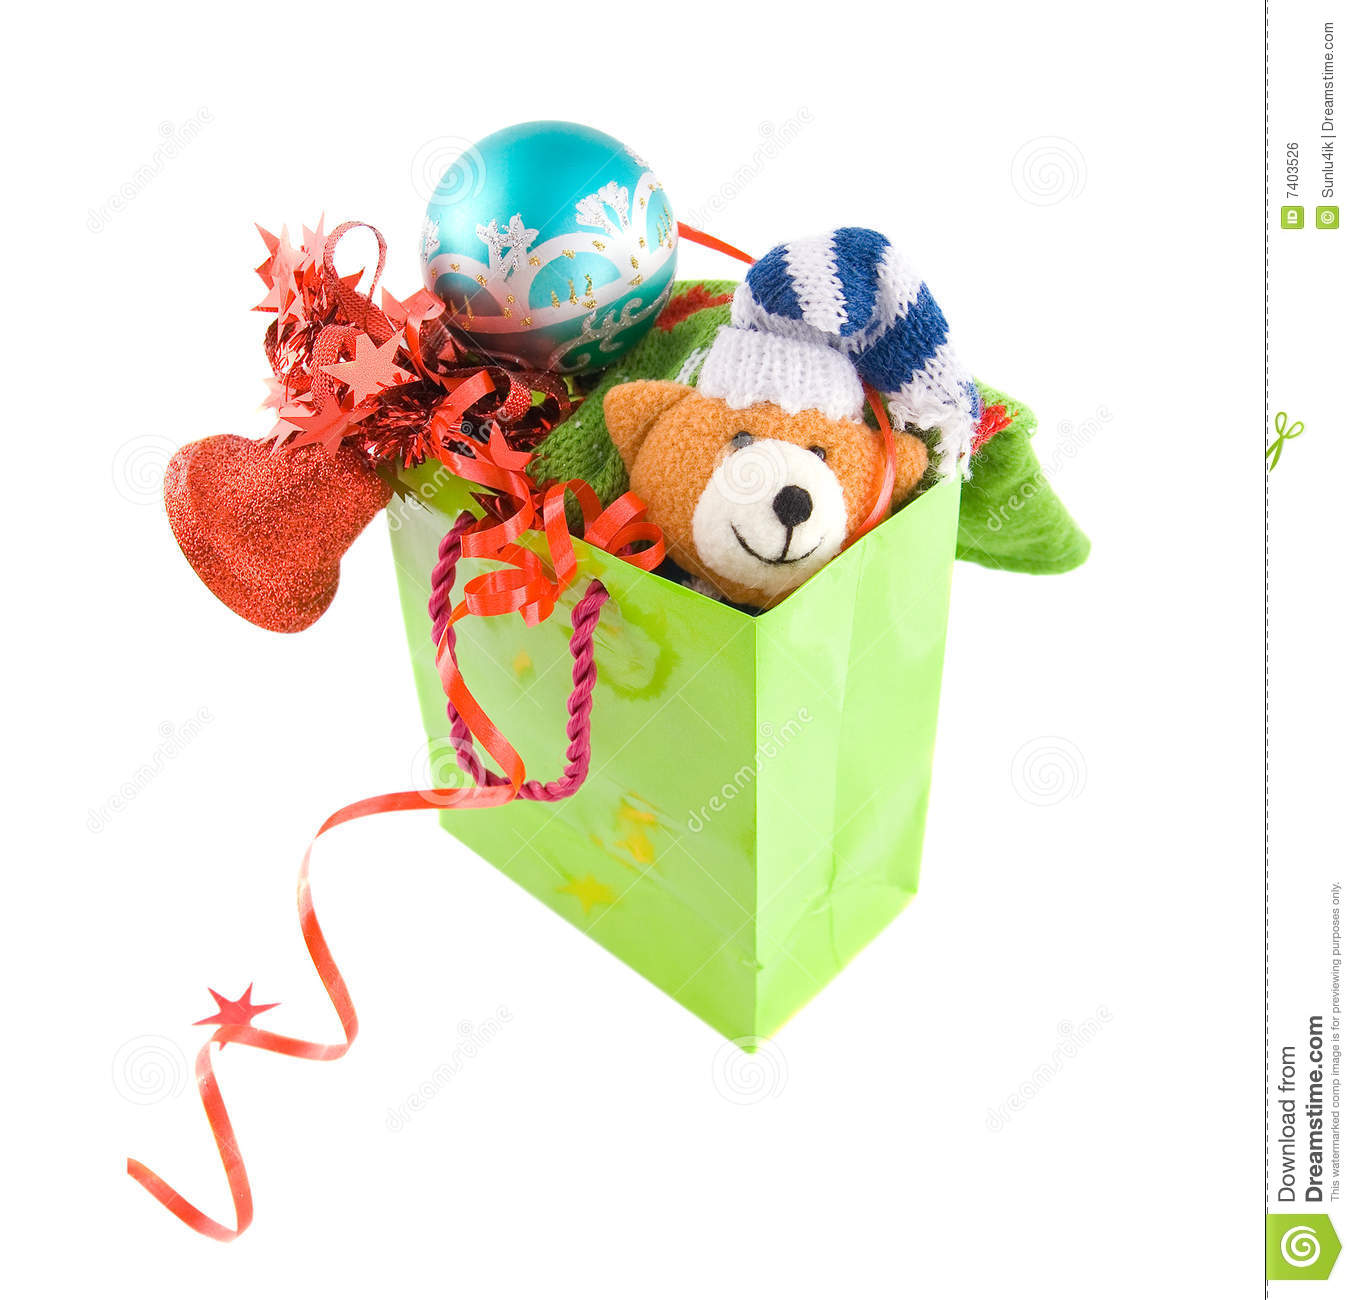 Package With Christmas Gift Royalty Free Stock Image - Image: 7403526